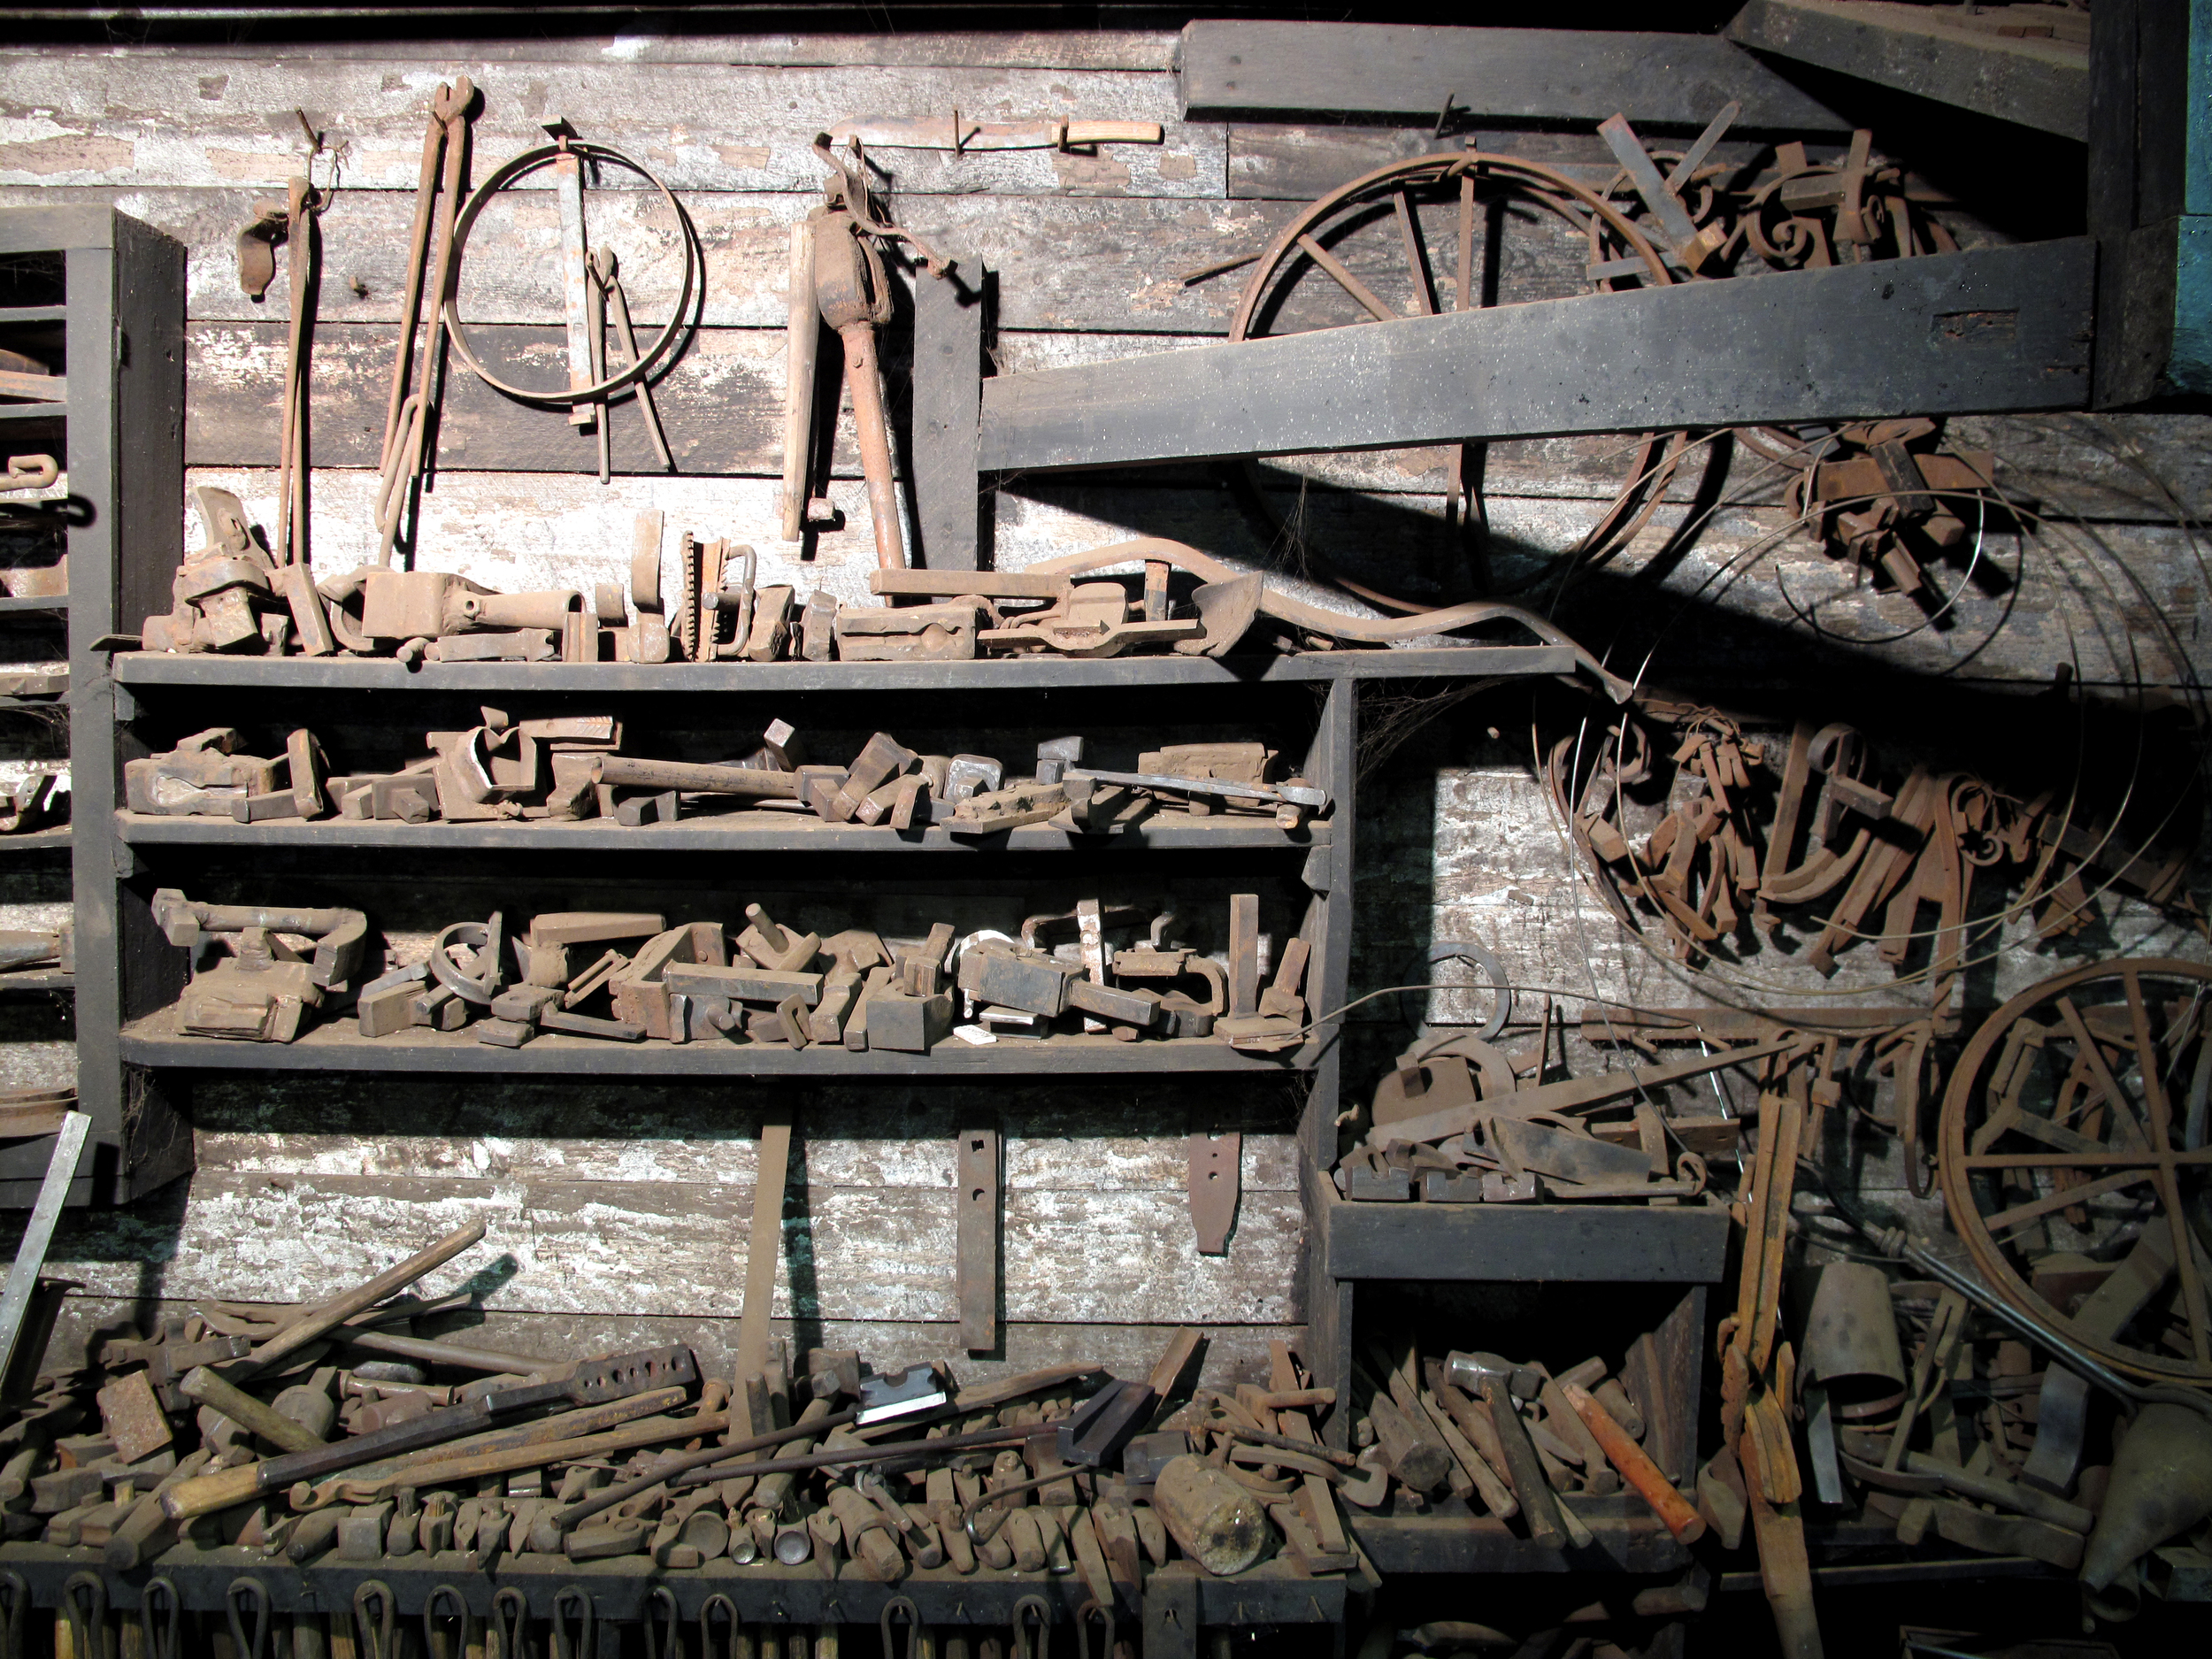 5_tools_at_a_artist_blacksmith_place.JPG